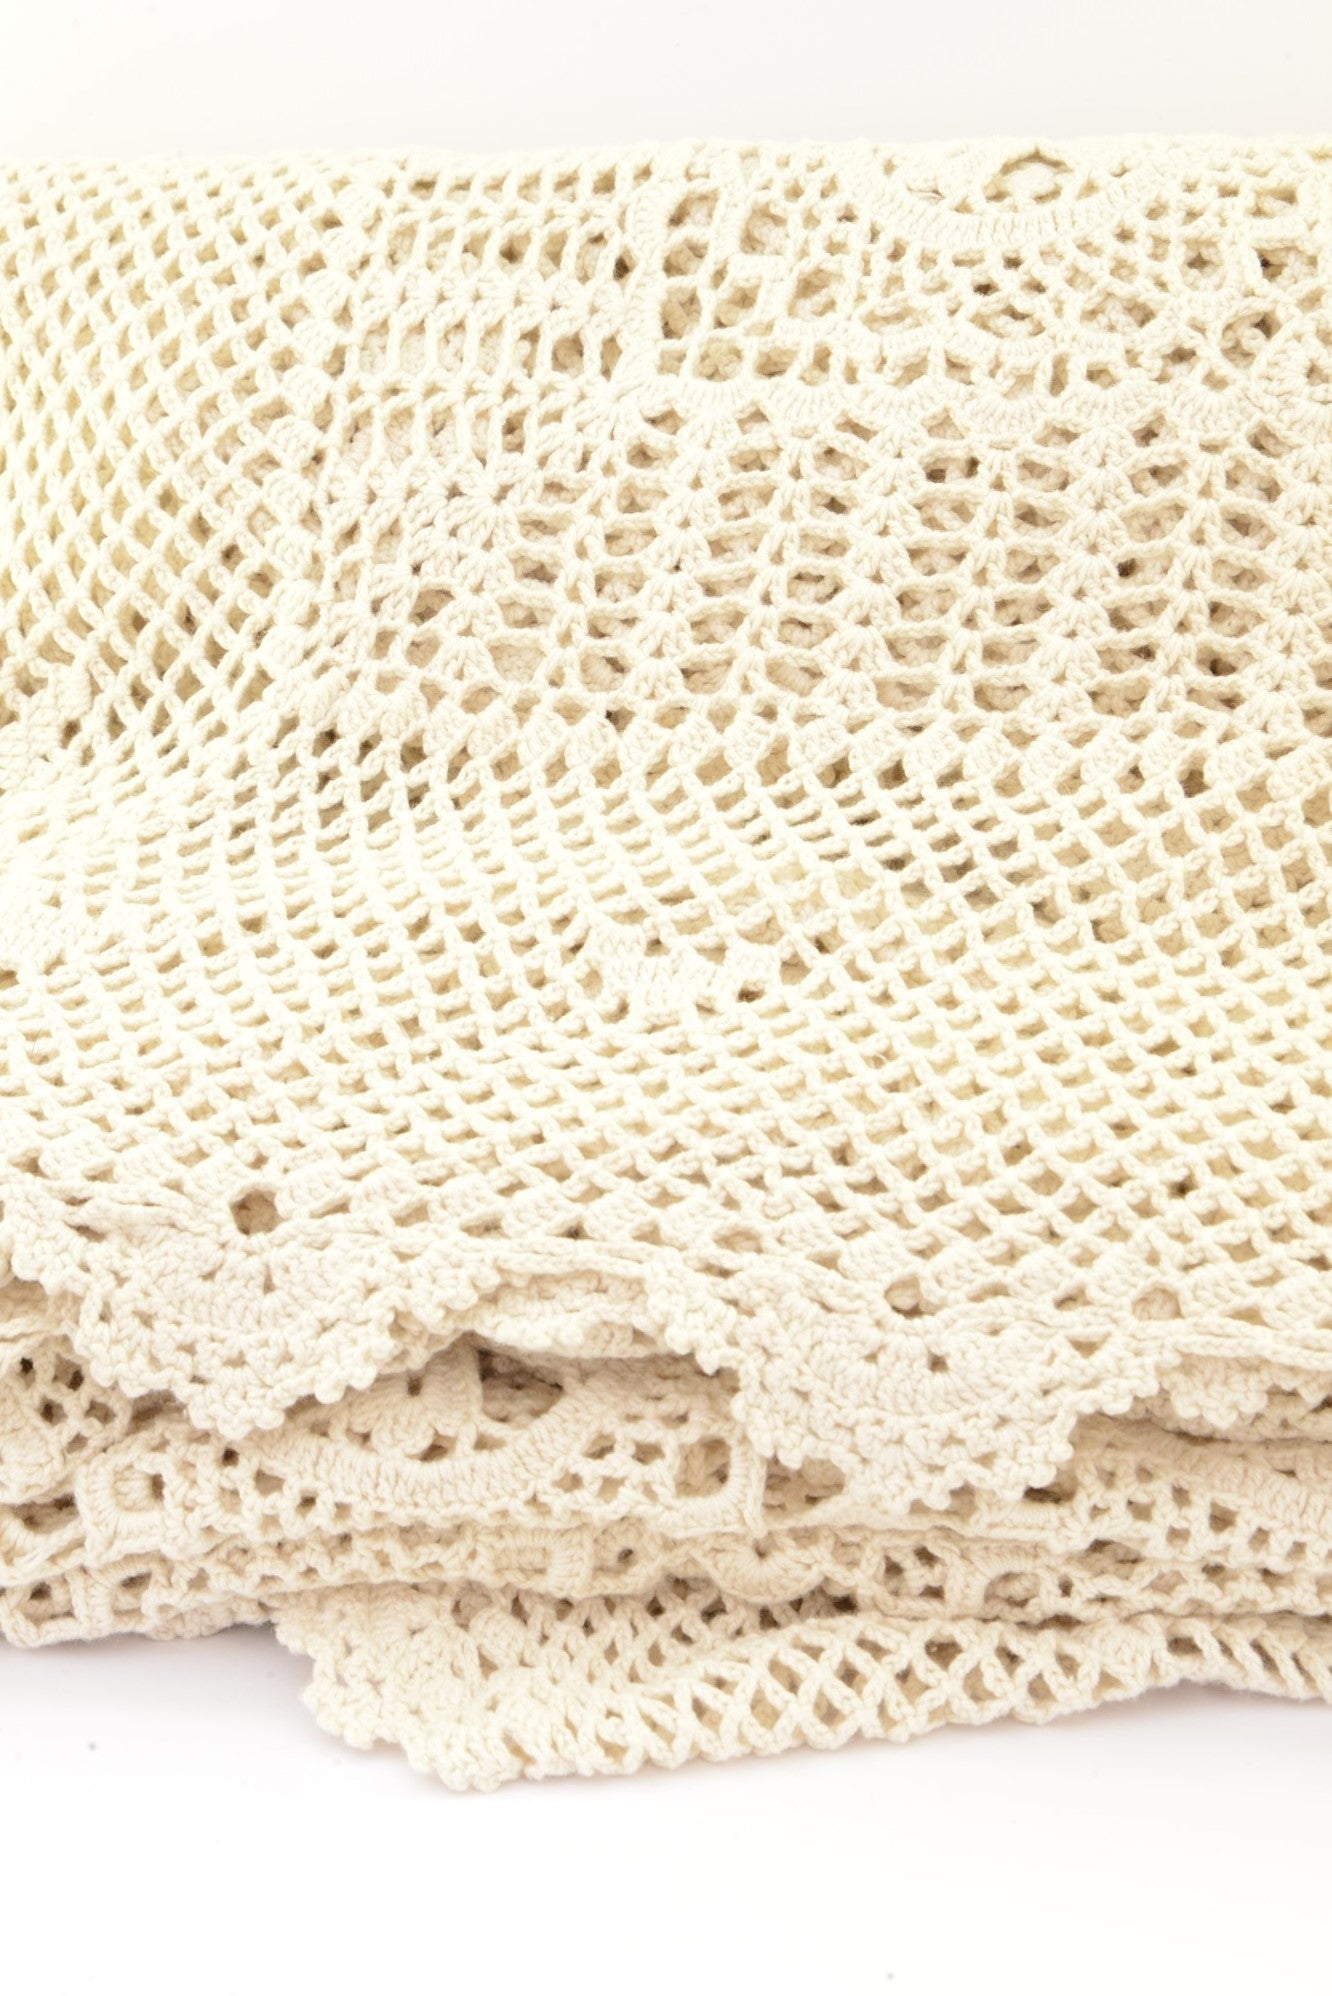 Cream crocheted tablecloth